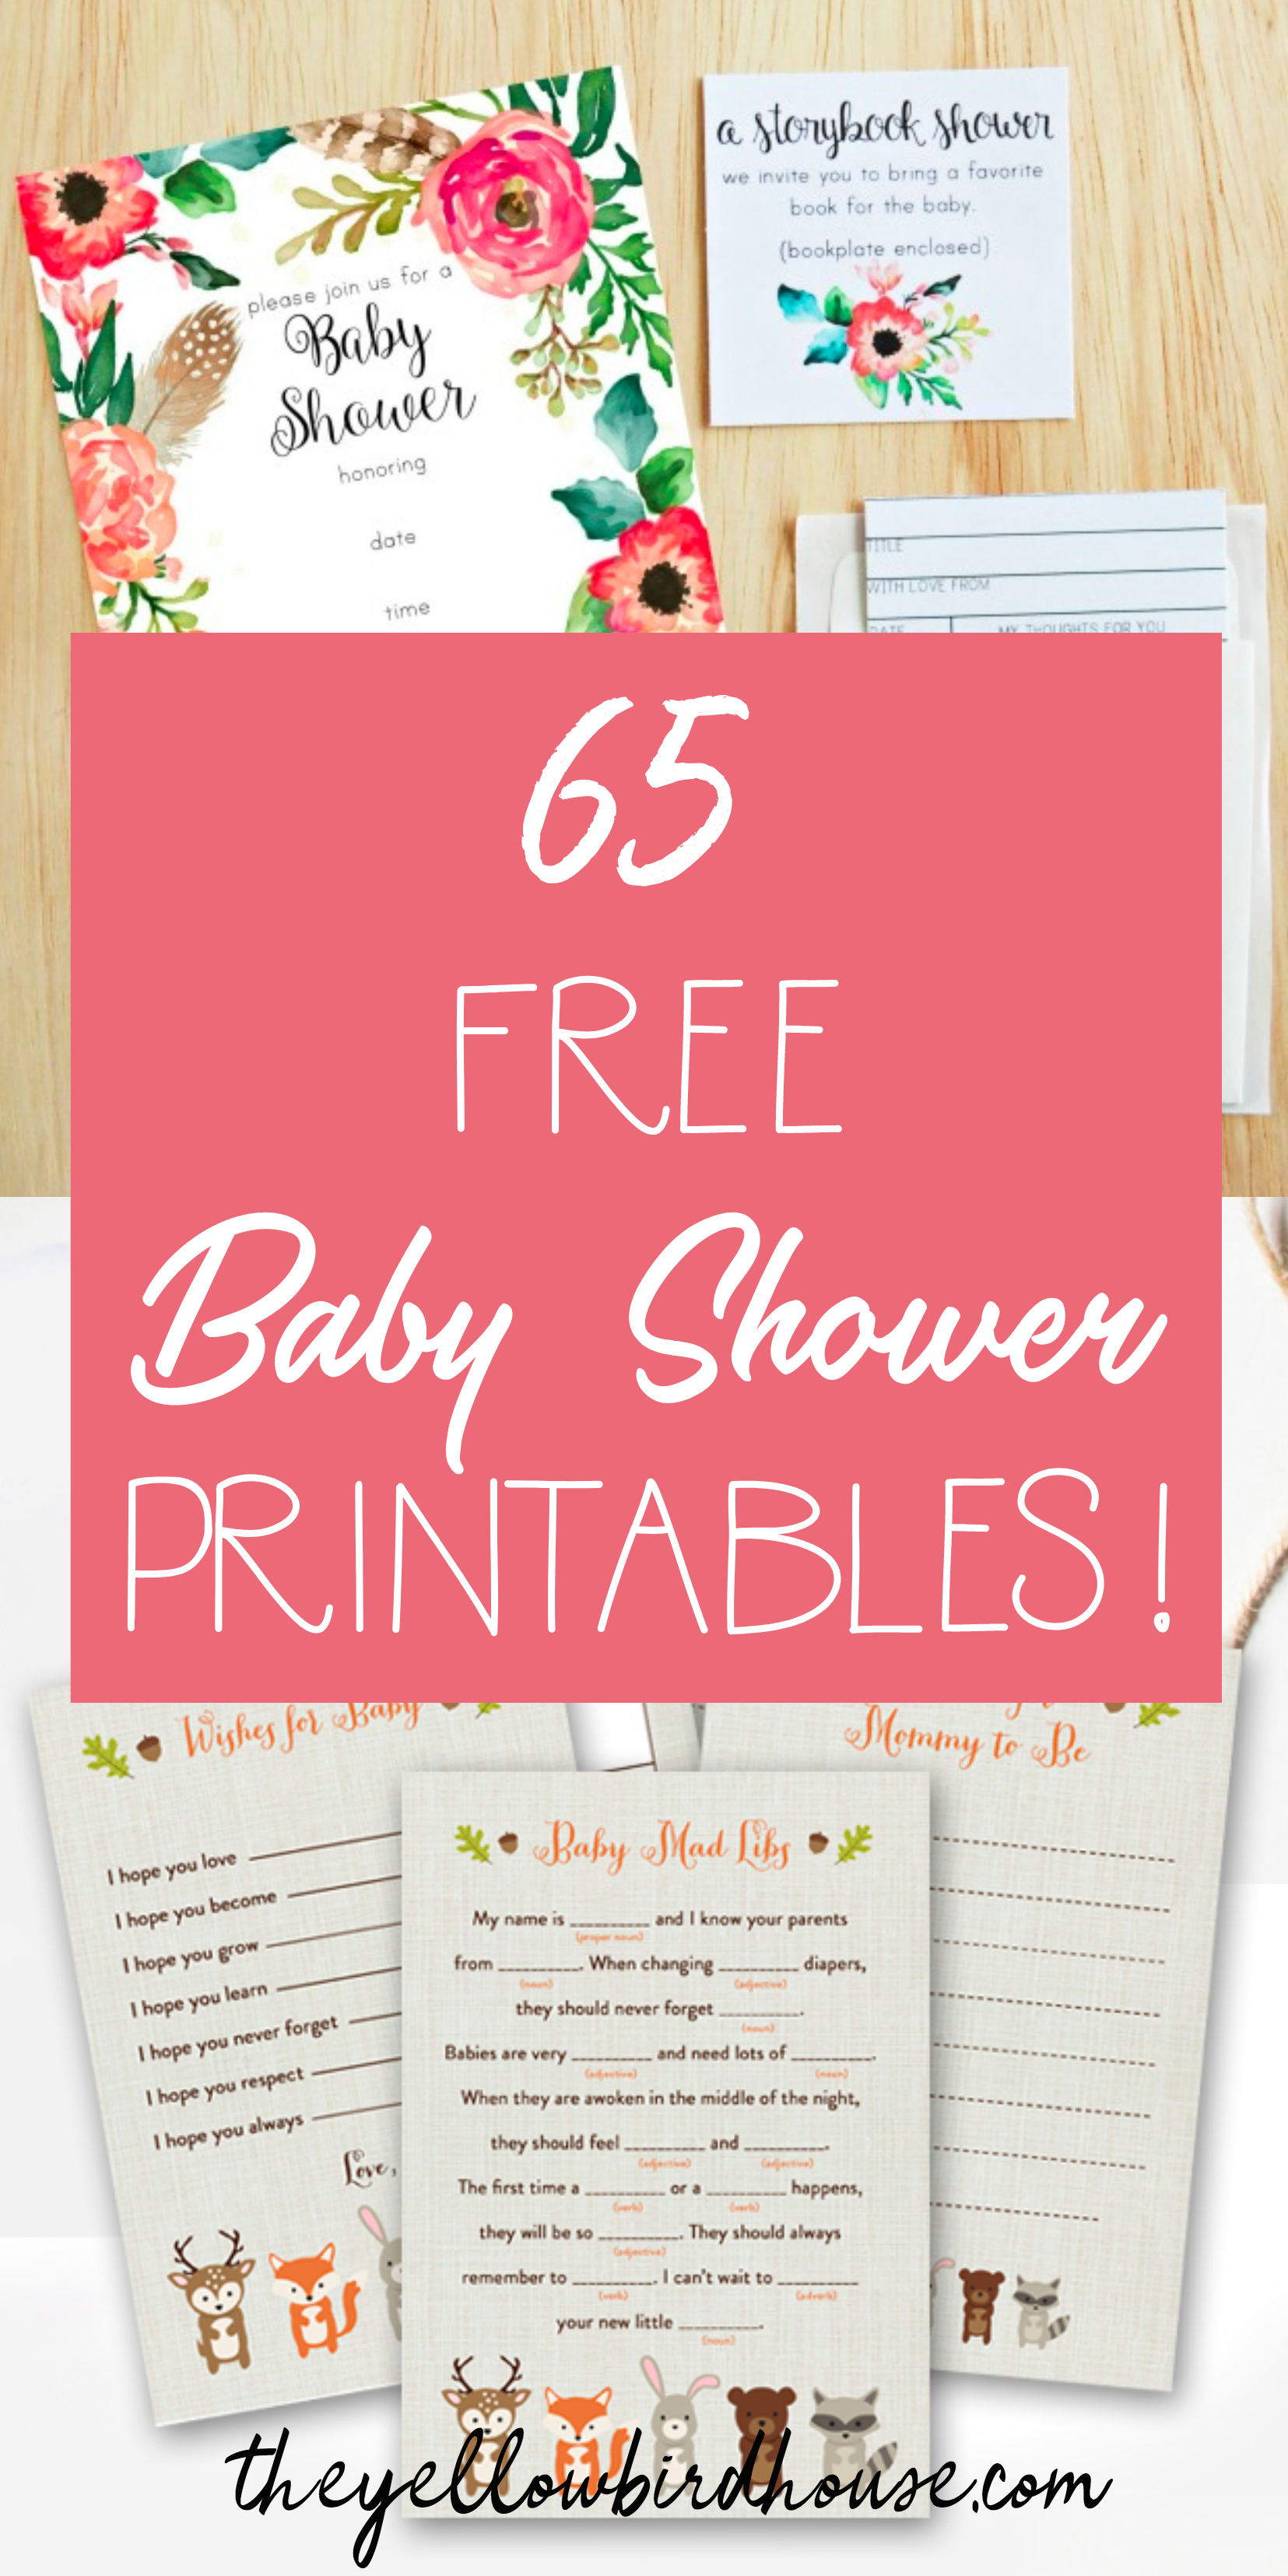 65 Free Baby Shower Printables For An Adorable Party - Free Printable Black And White Baby Shower Invitations